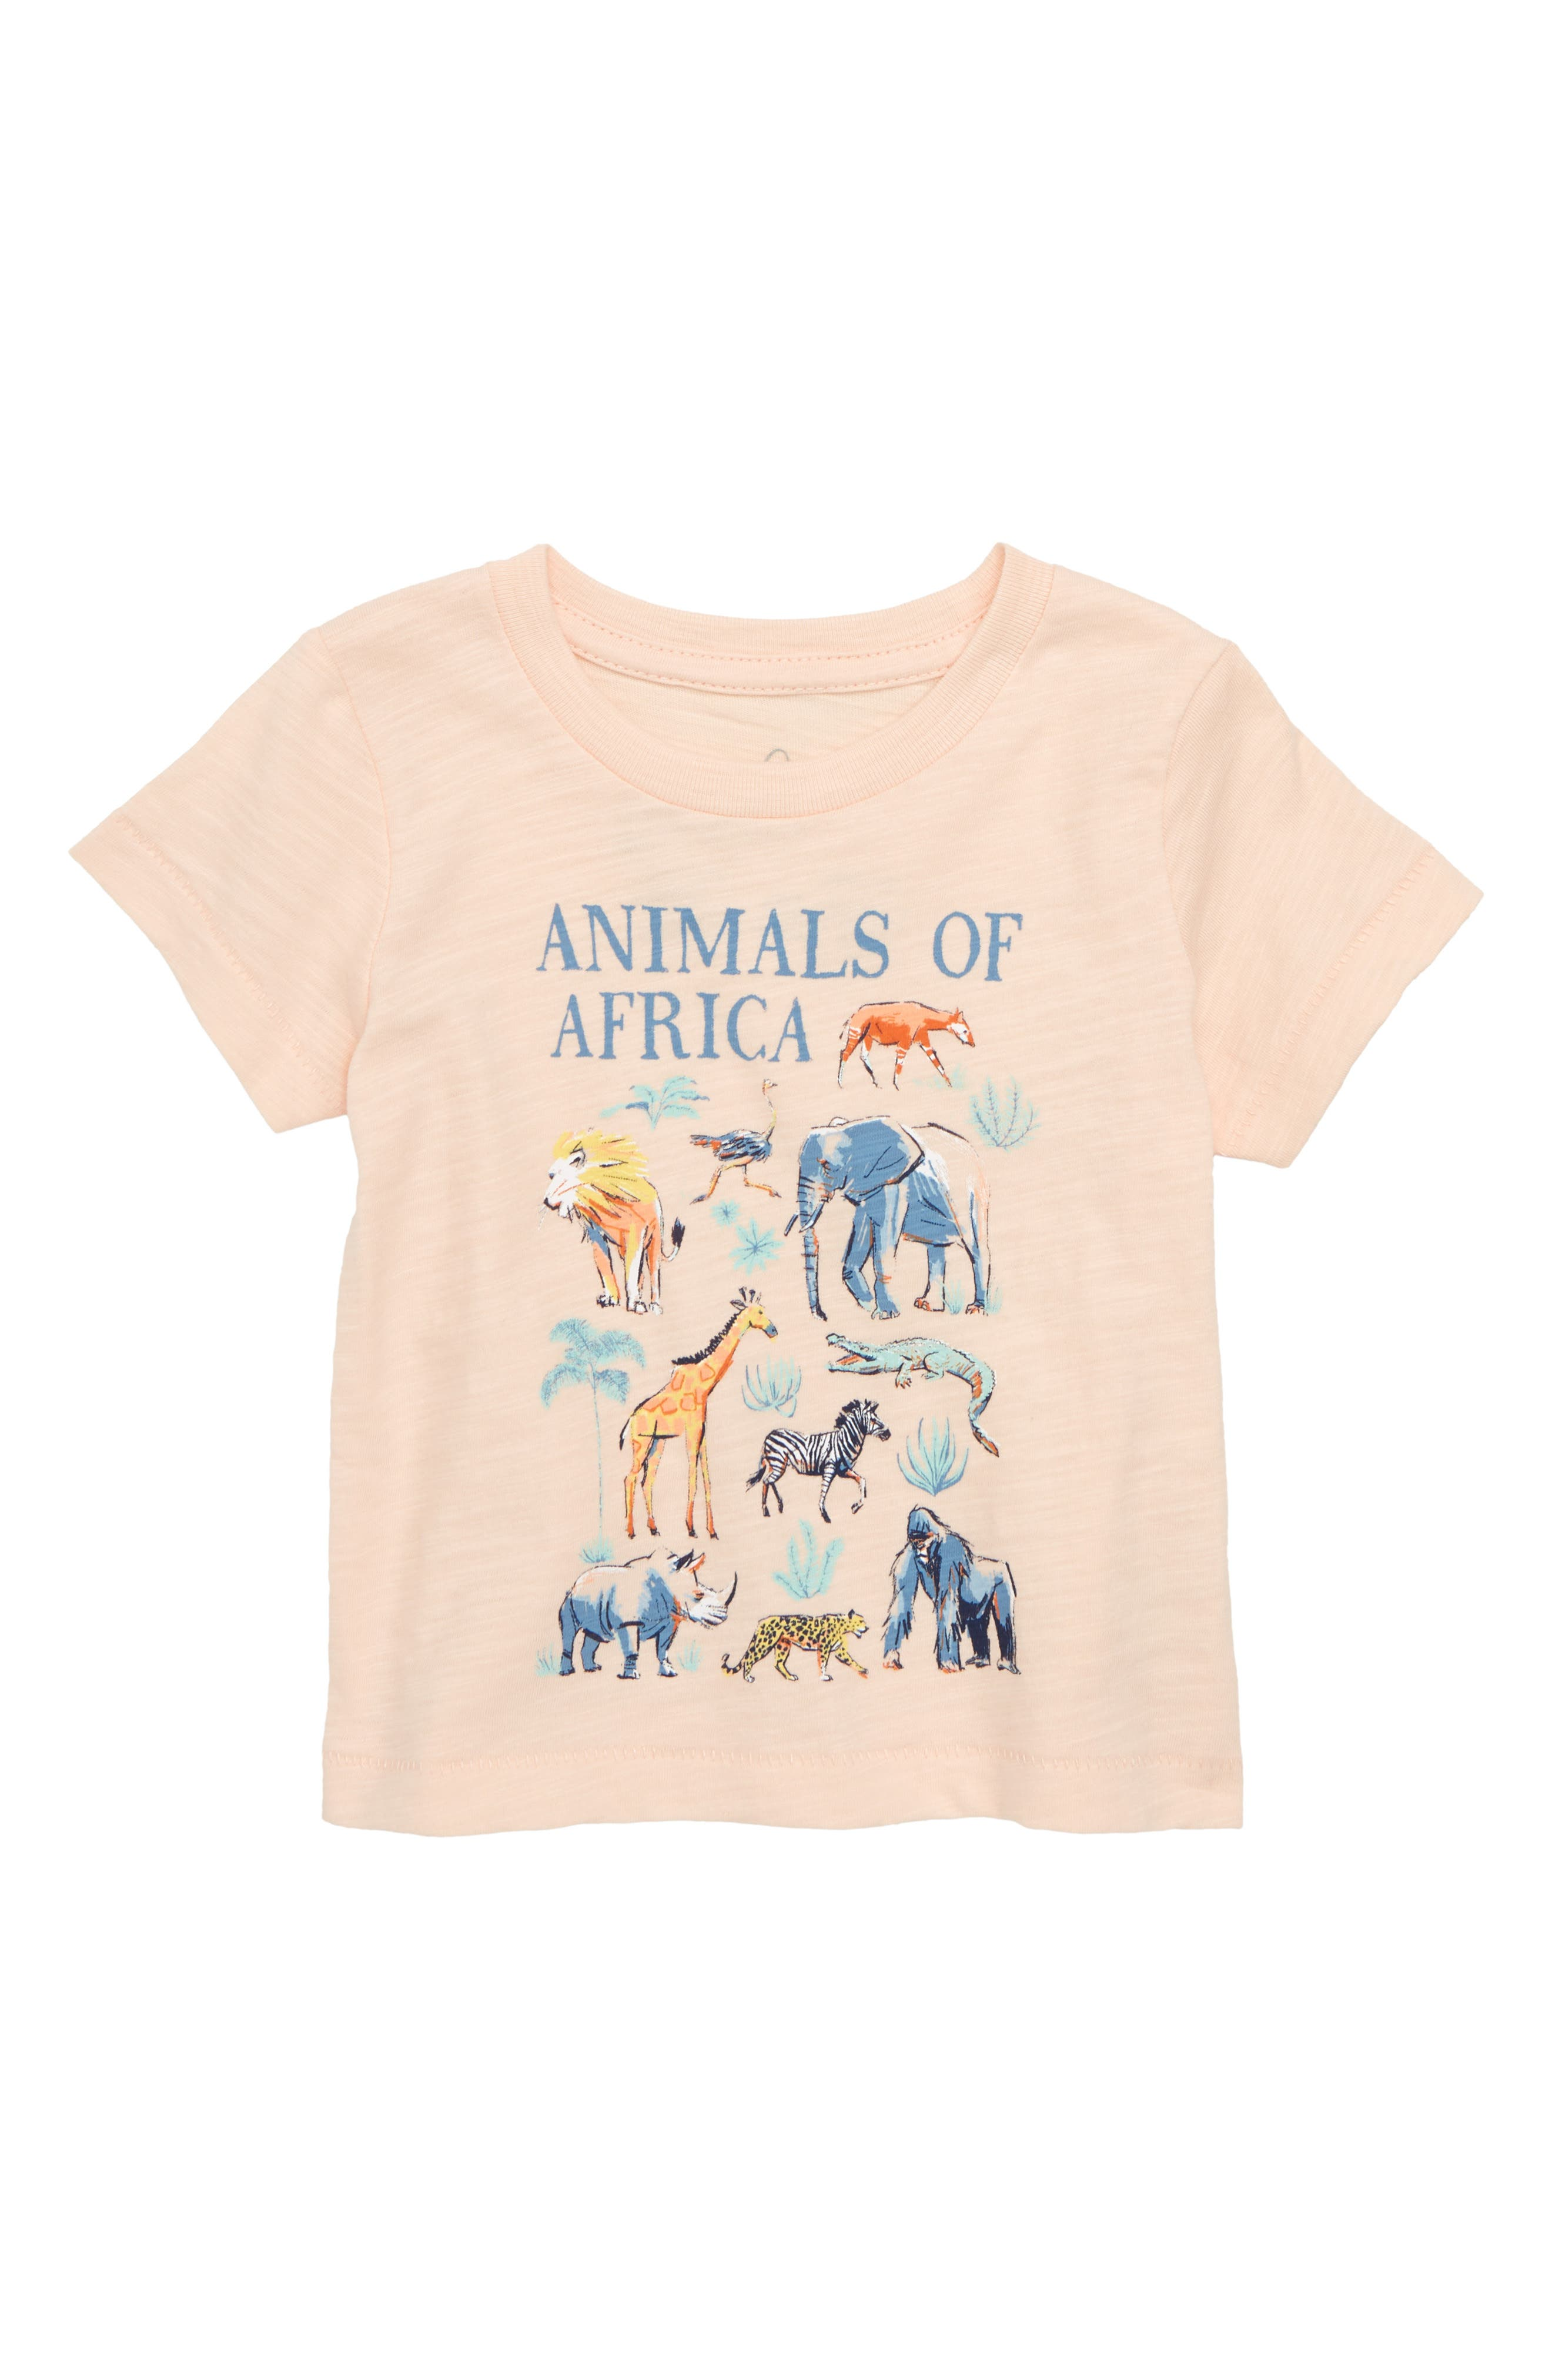 Animals of Africa Graphic Tee,                             Main thumbnail 1, color,                             950